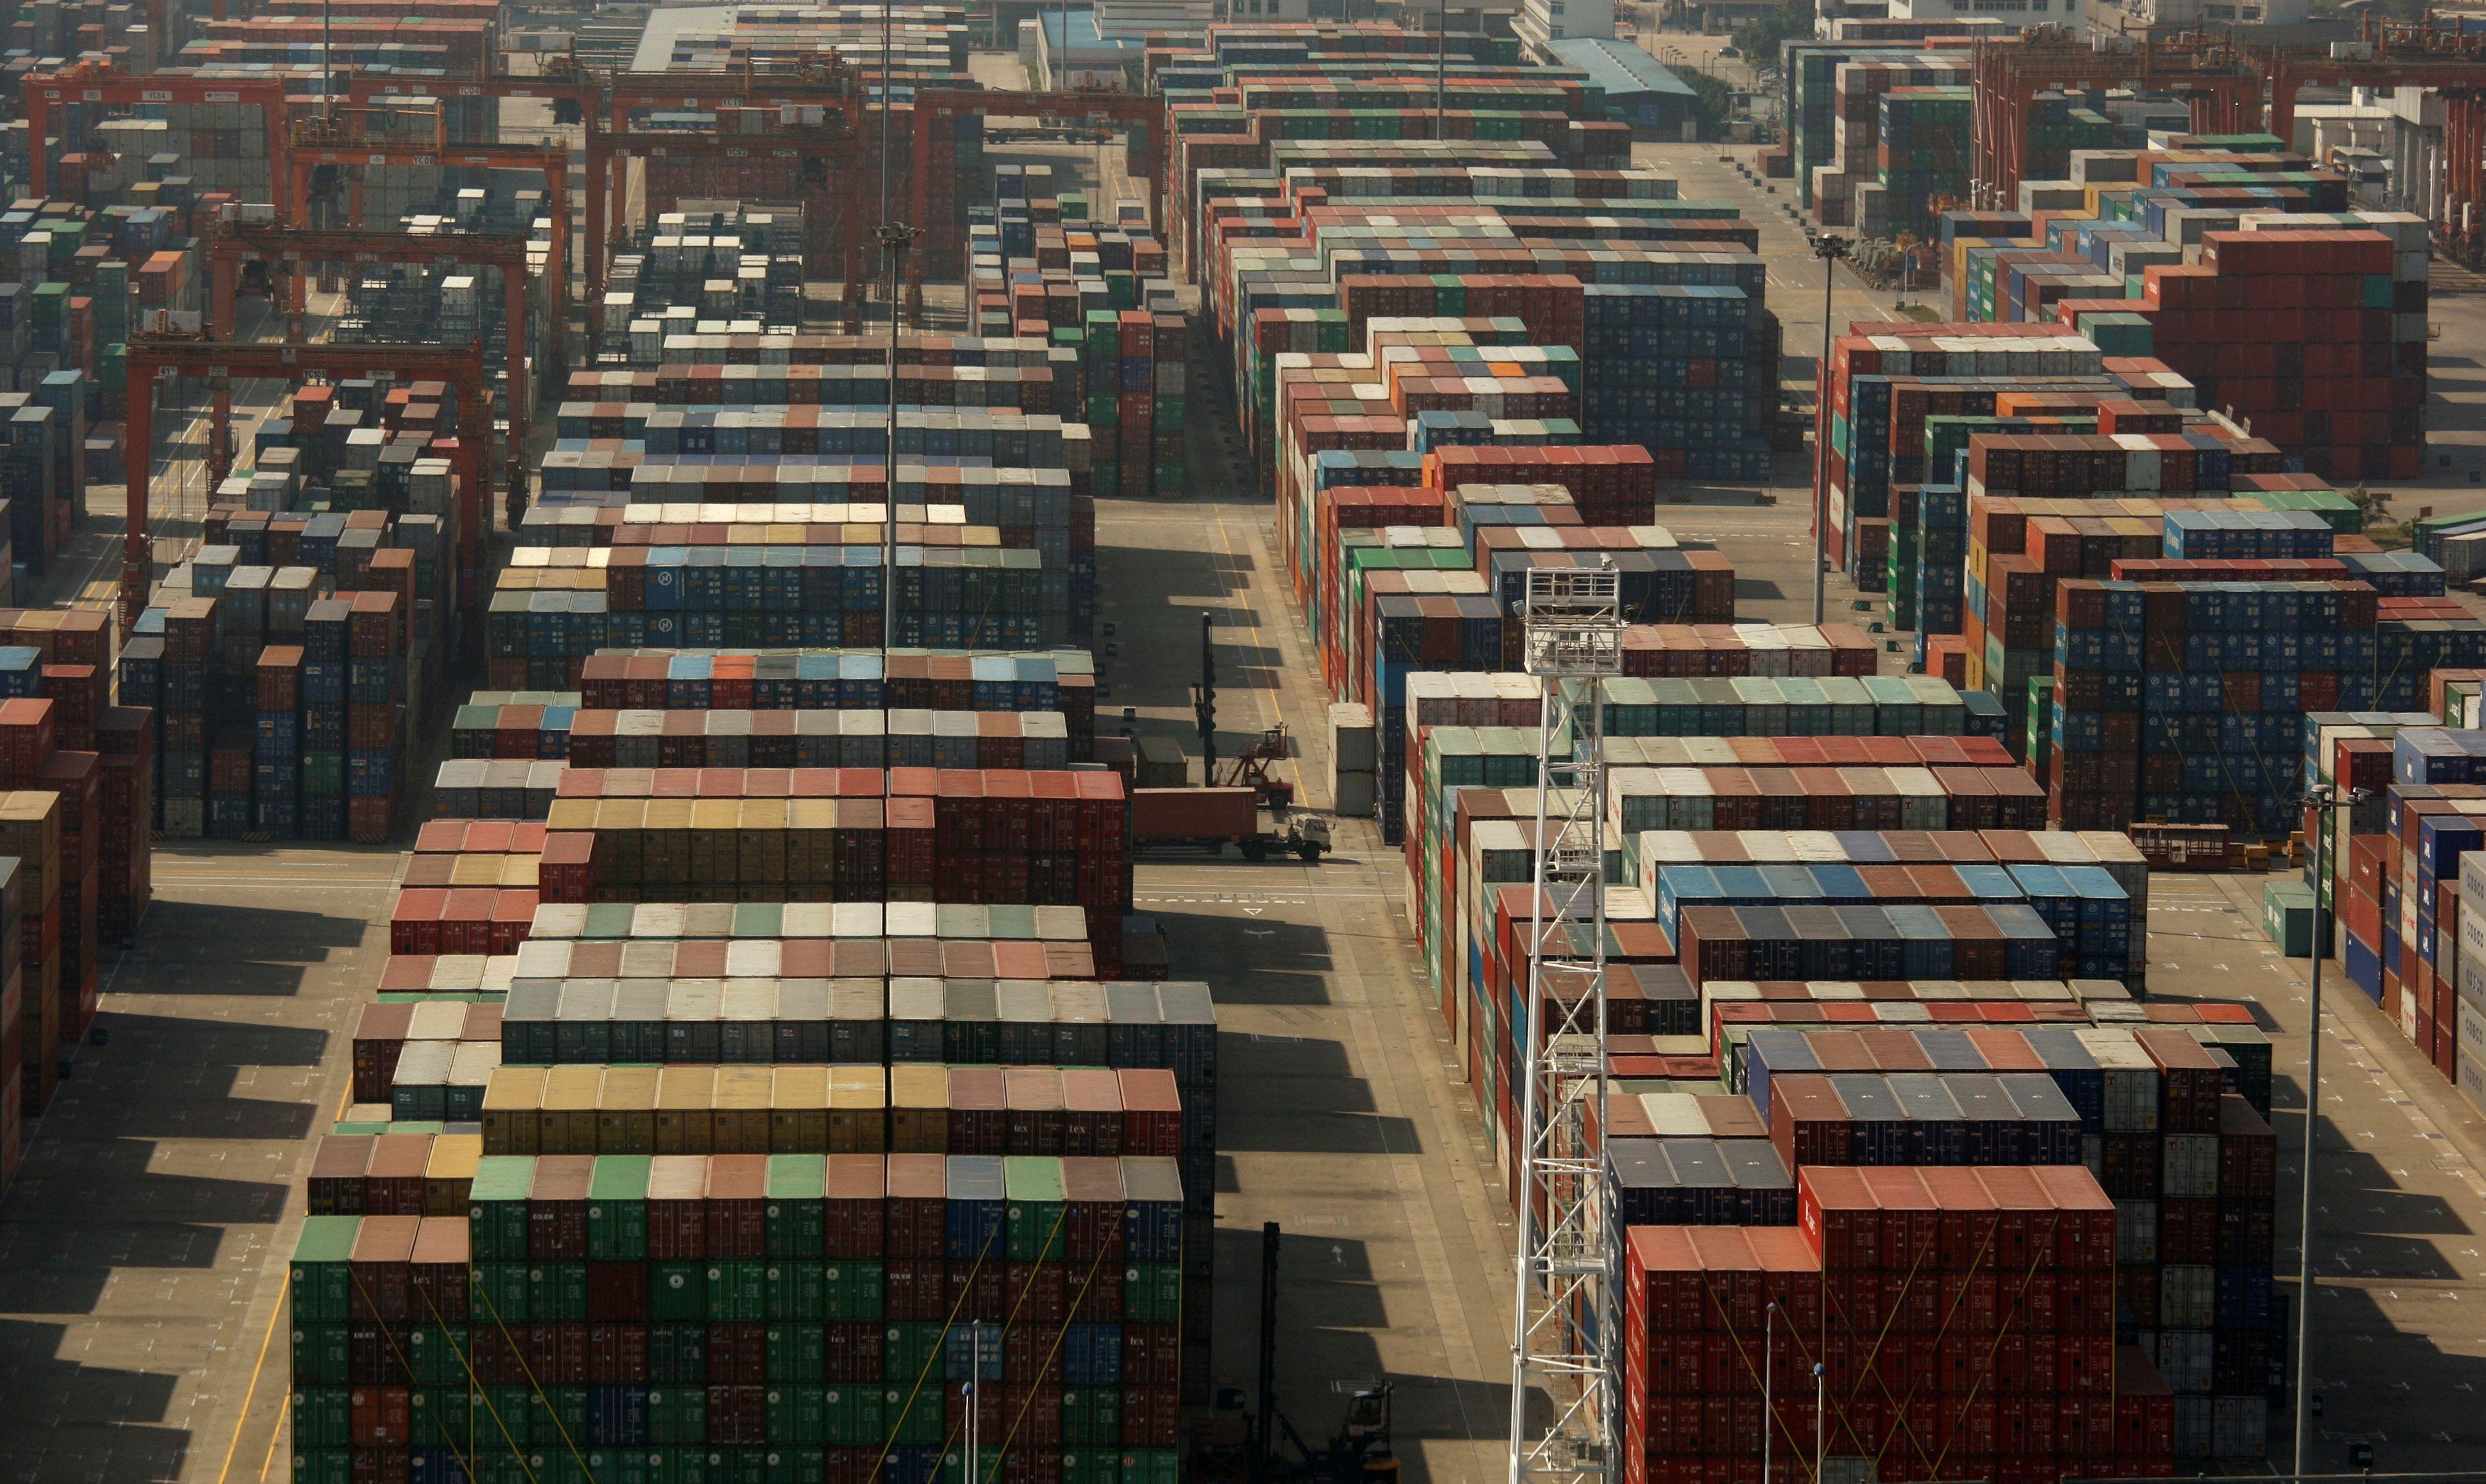 Containers are seen at Phases I and II of the Yantian International Container Terminal (YICT) in the southern Chinese city of Shenzhen in Guangdong province November 25, 2008.  REUTERS/Bobby Yip/File Photo